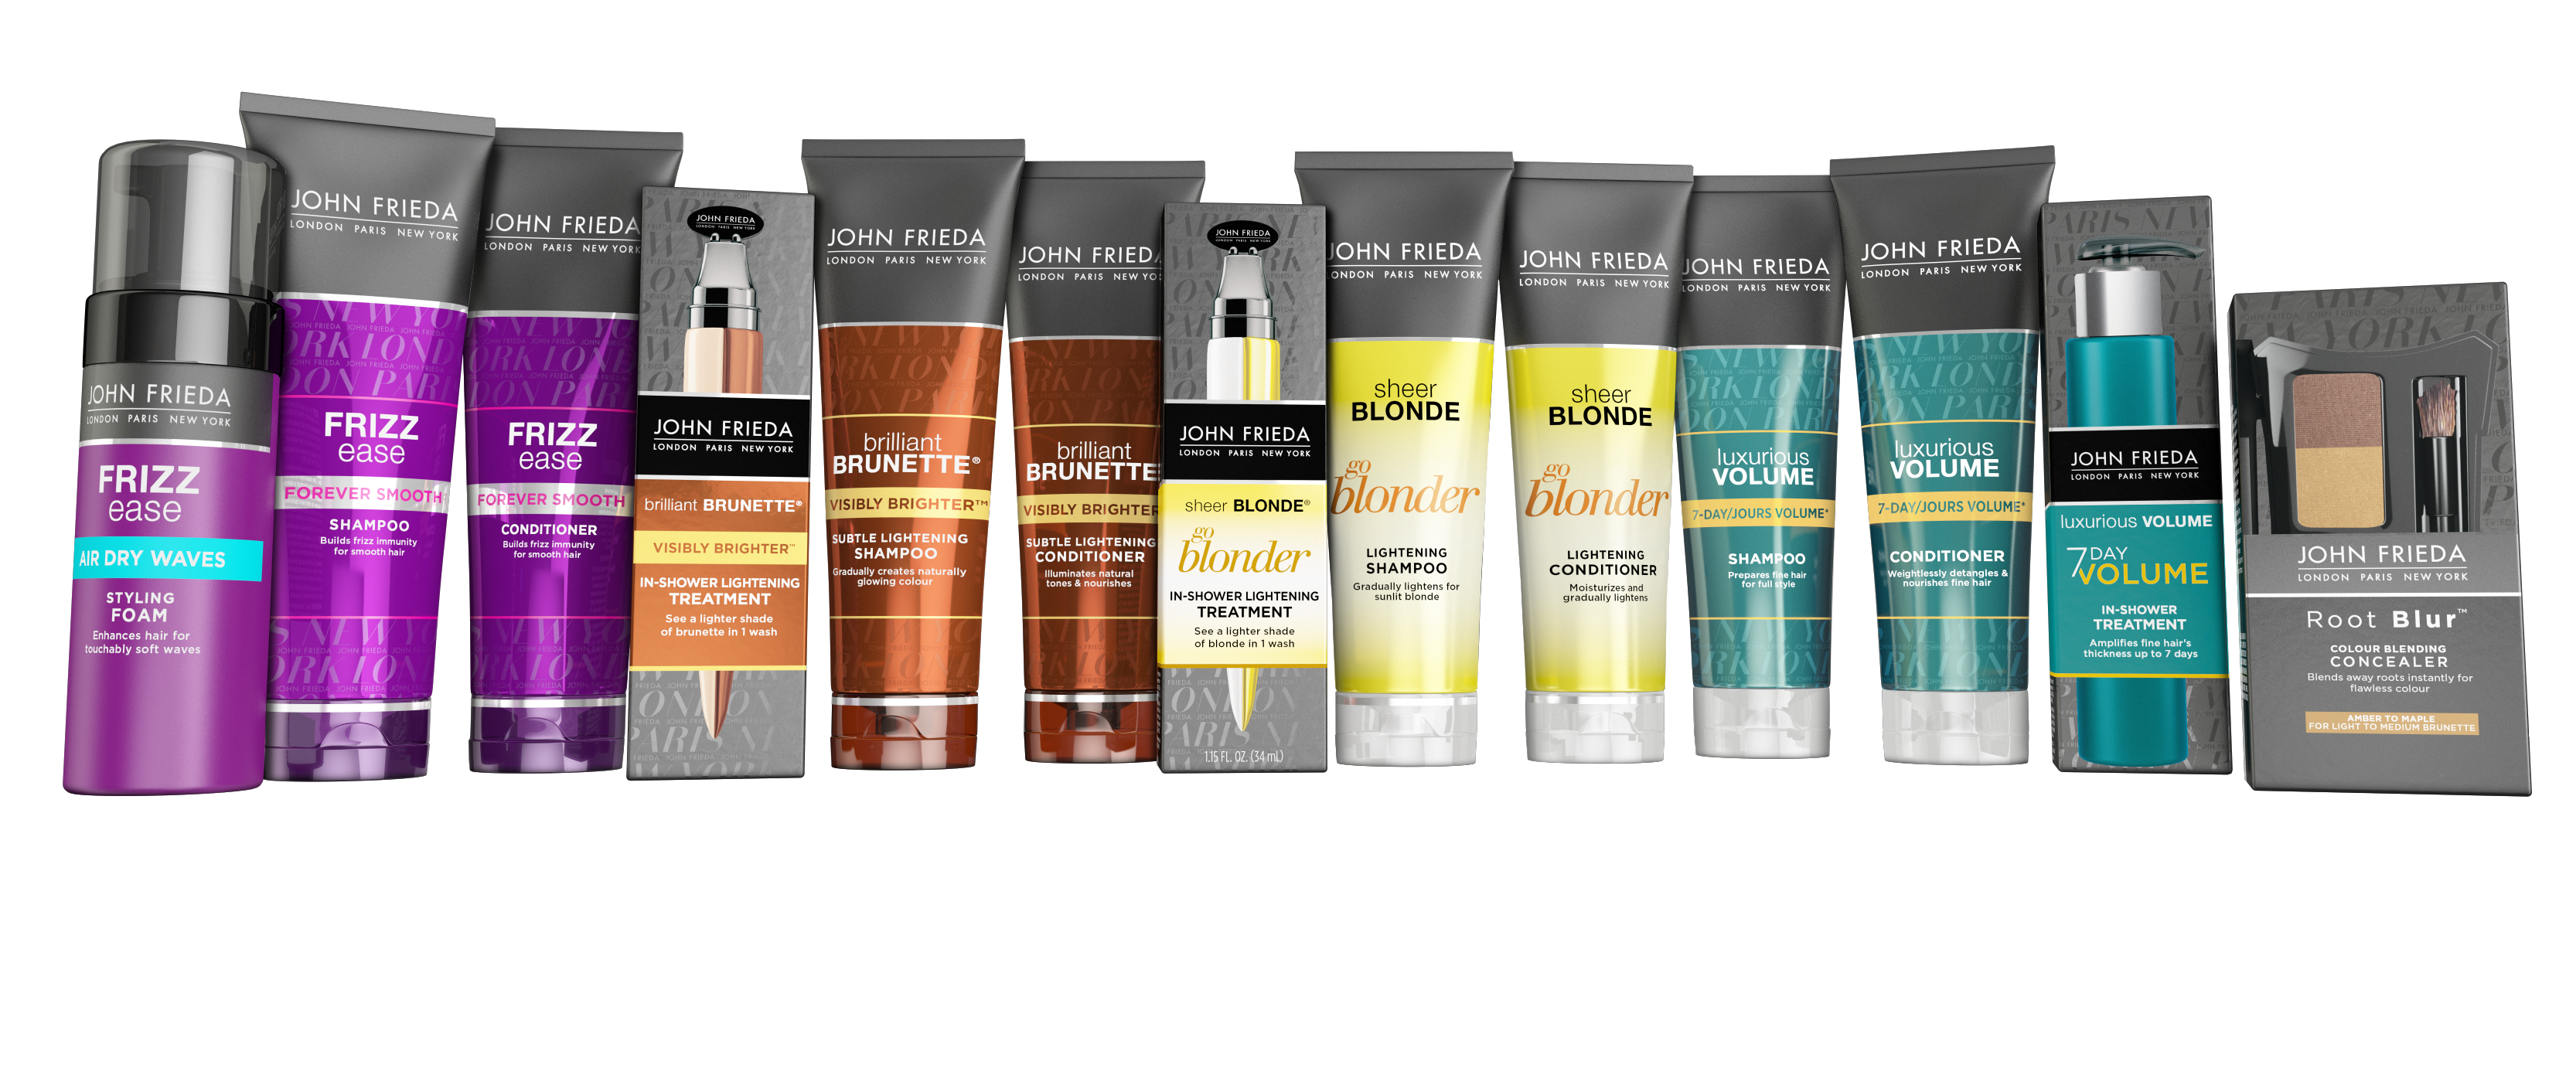 John frieda new products